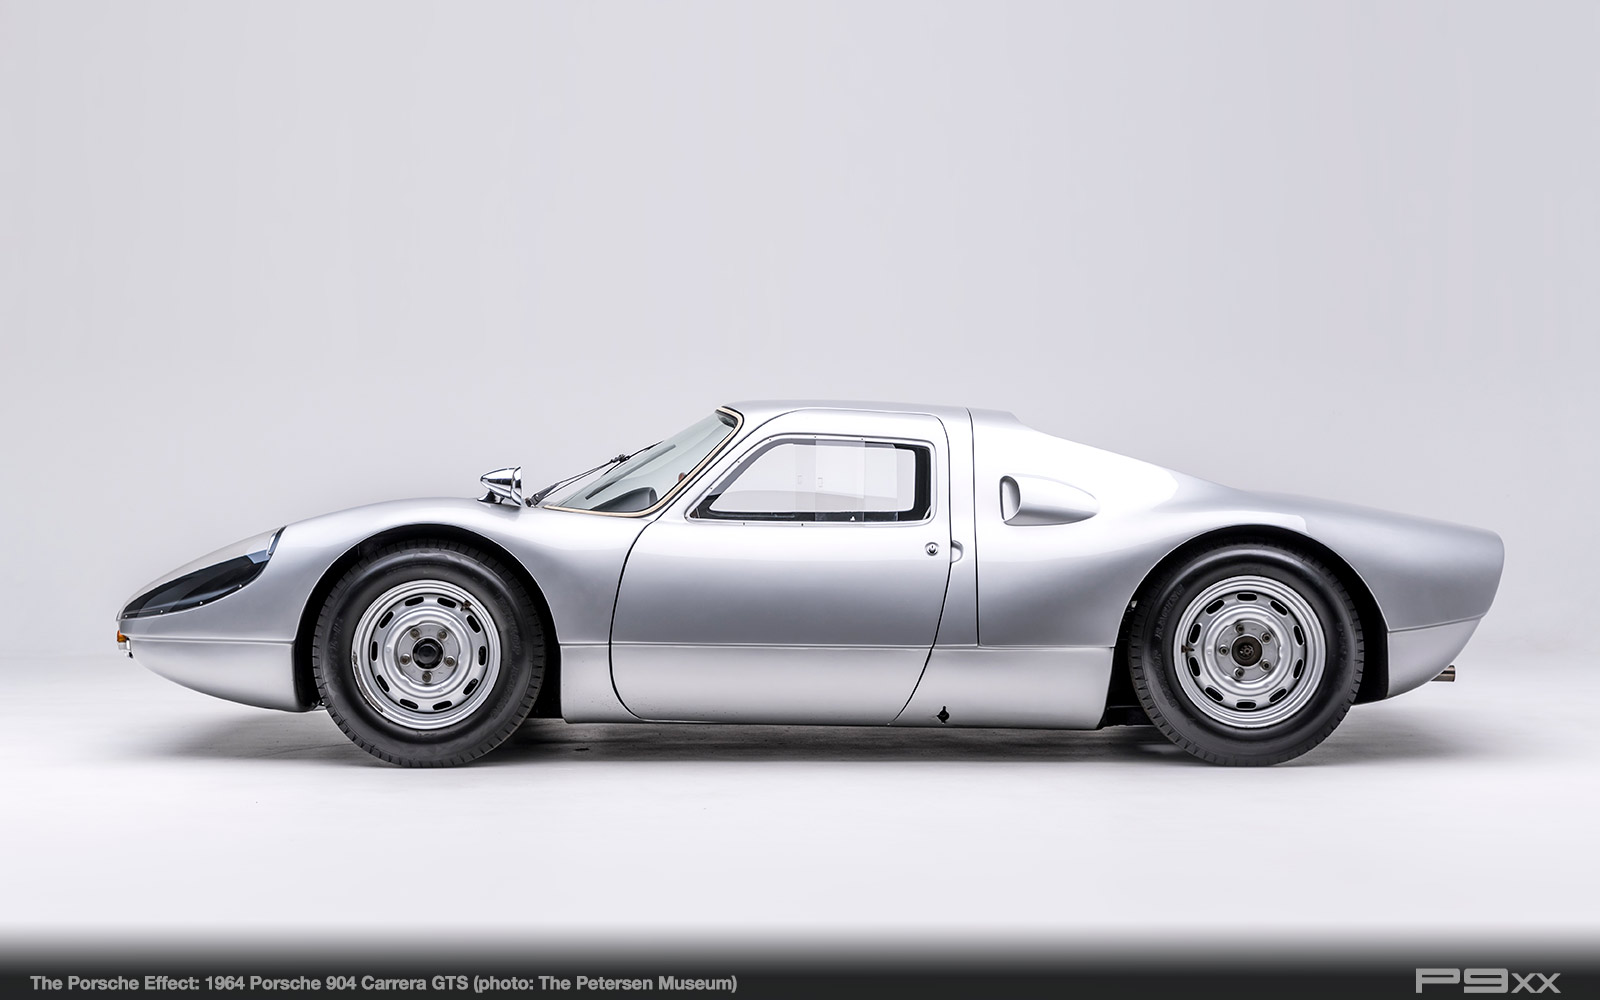 1964-904-Carrera-GTS-Petersen-Automotive-Museum-The-Porsche-Effect-355